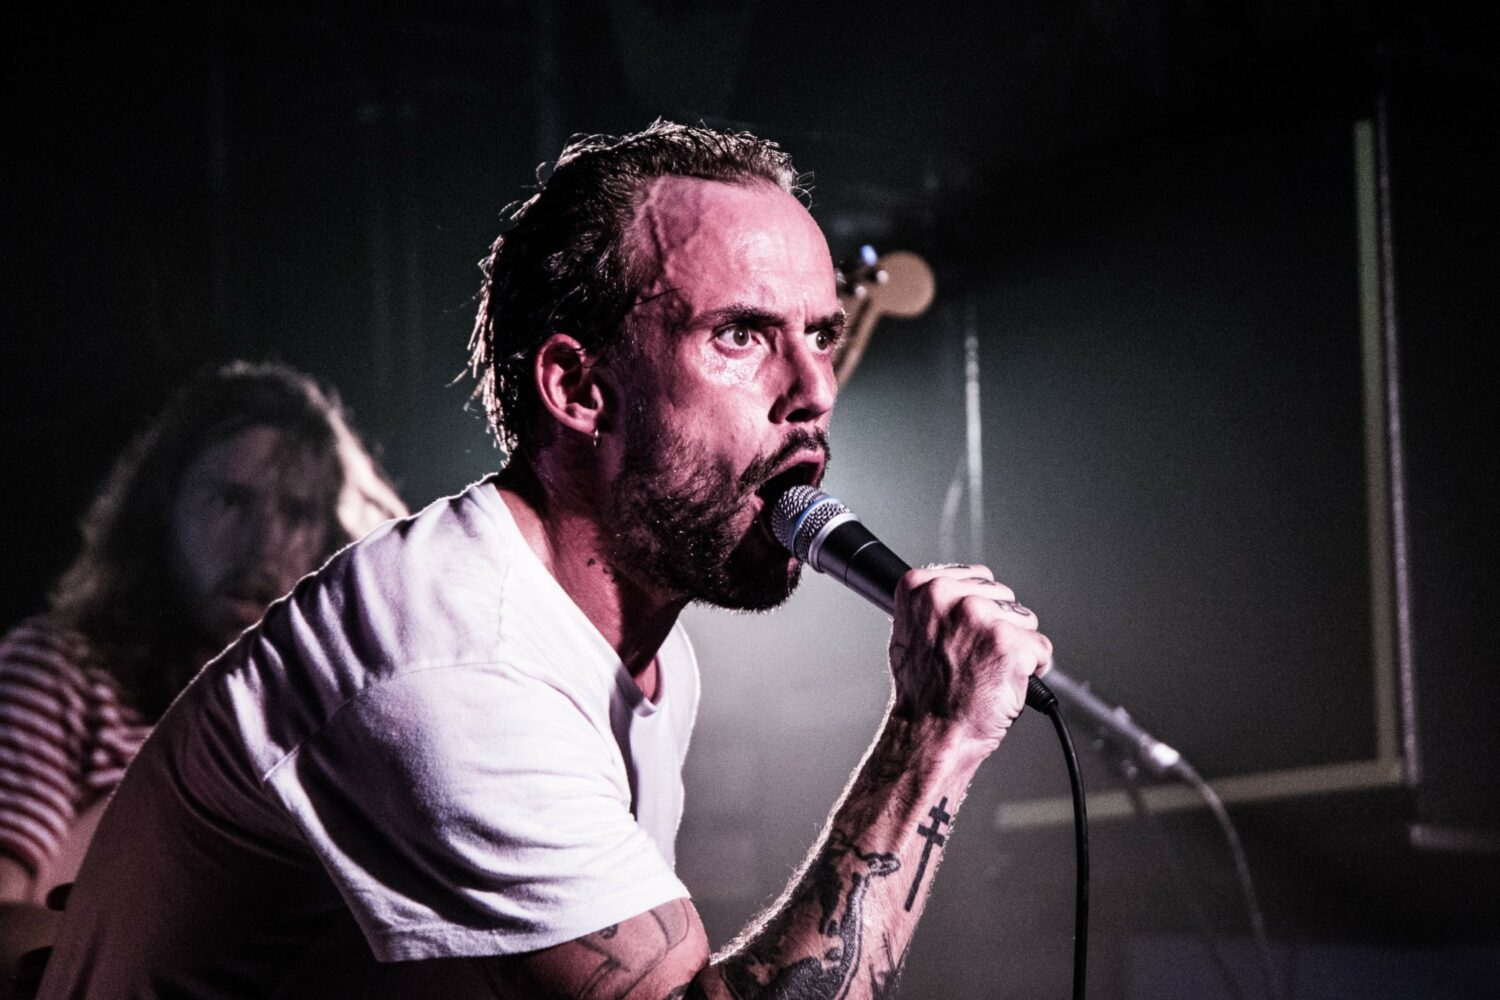 IDLES steal the show at an eclectic and forward-thinking Visions Festival 2018